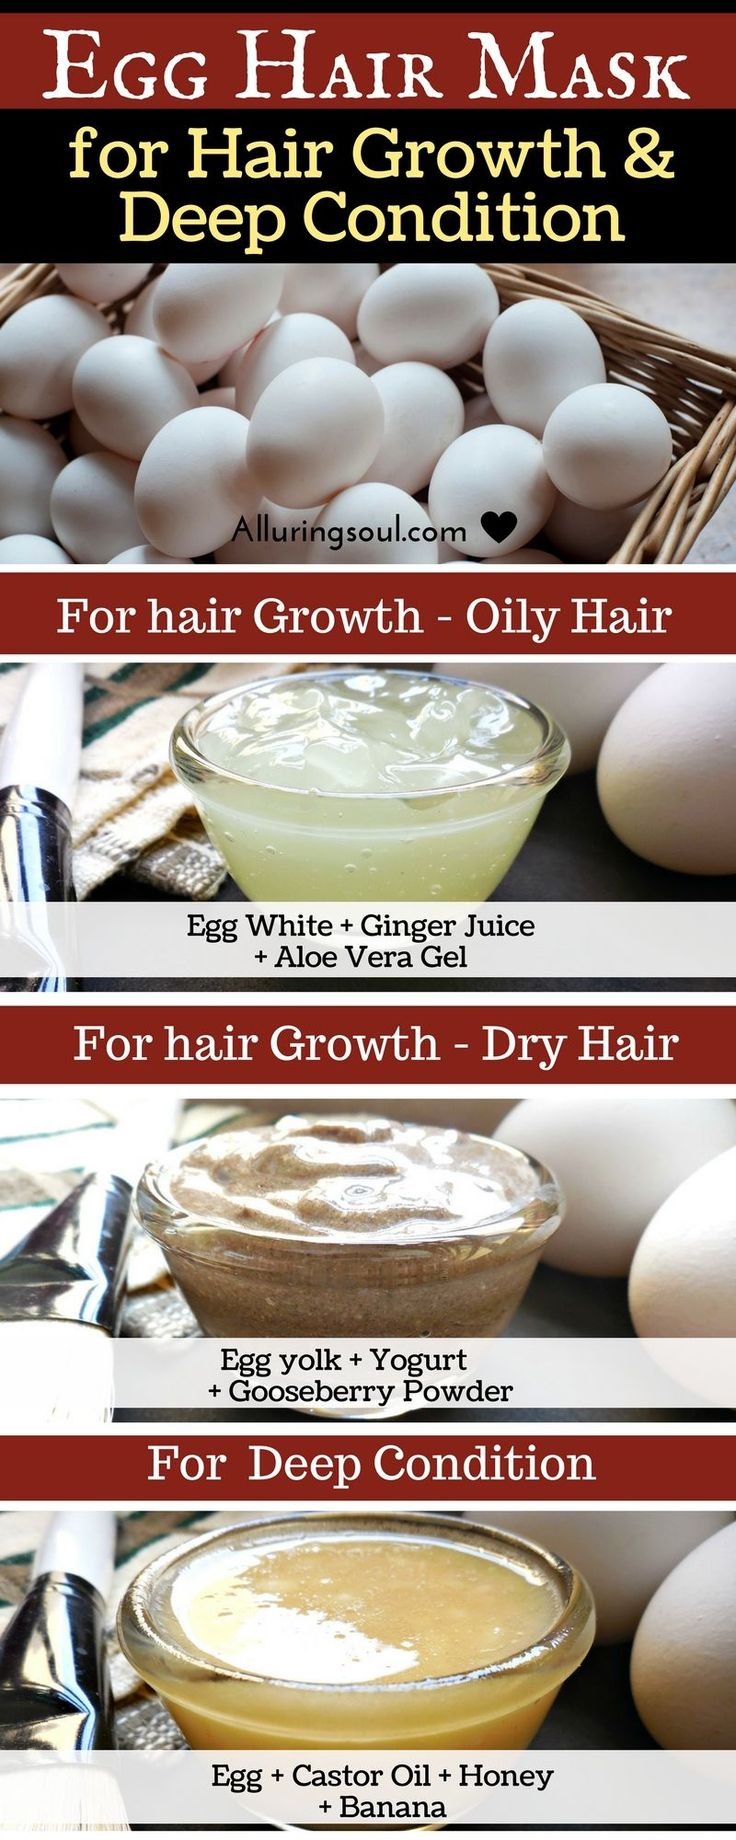 Egg mask for hair is an effective way to nourish your scalp and also get a healthy hair growth. It conditions hair deeply and make it silky smooth and strong.